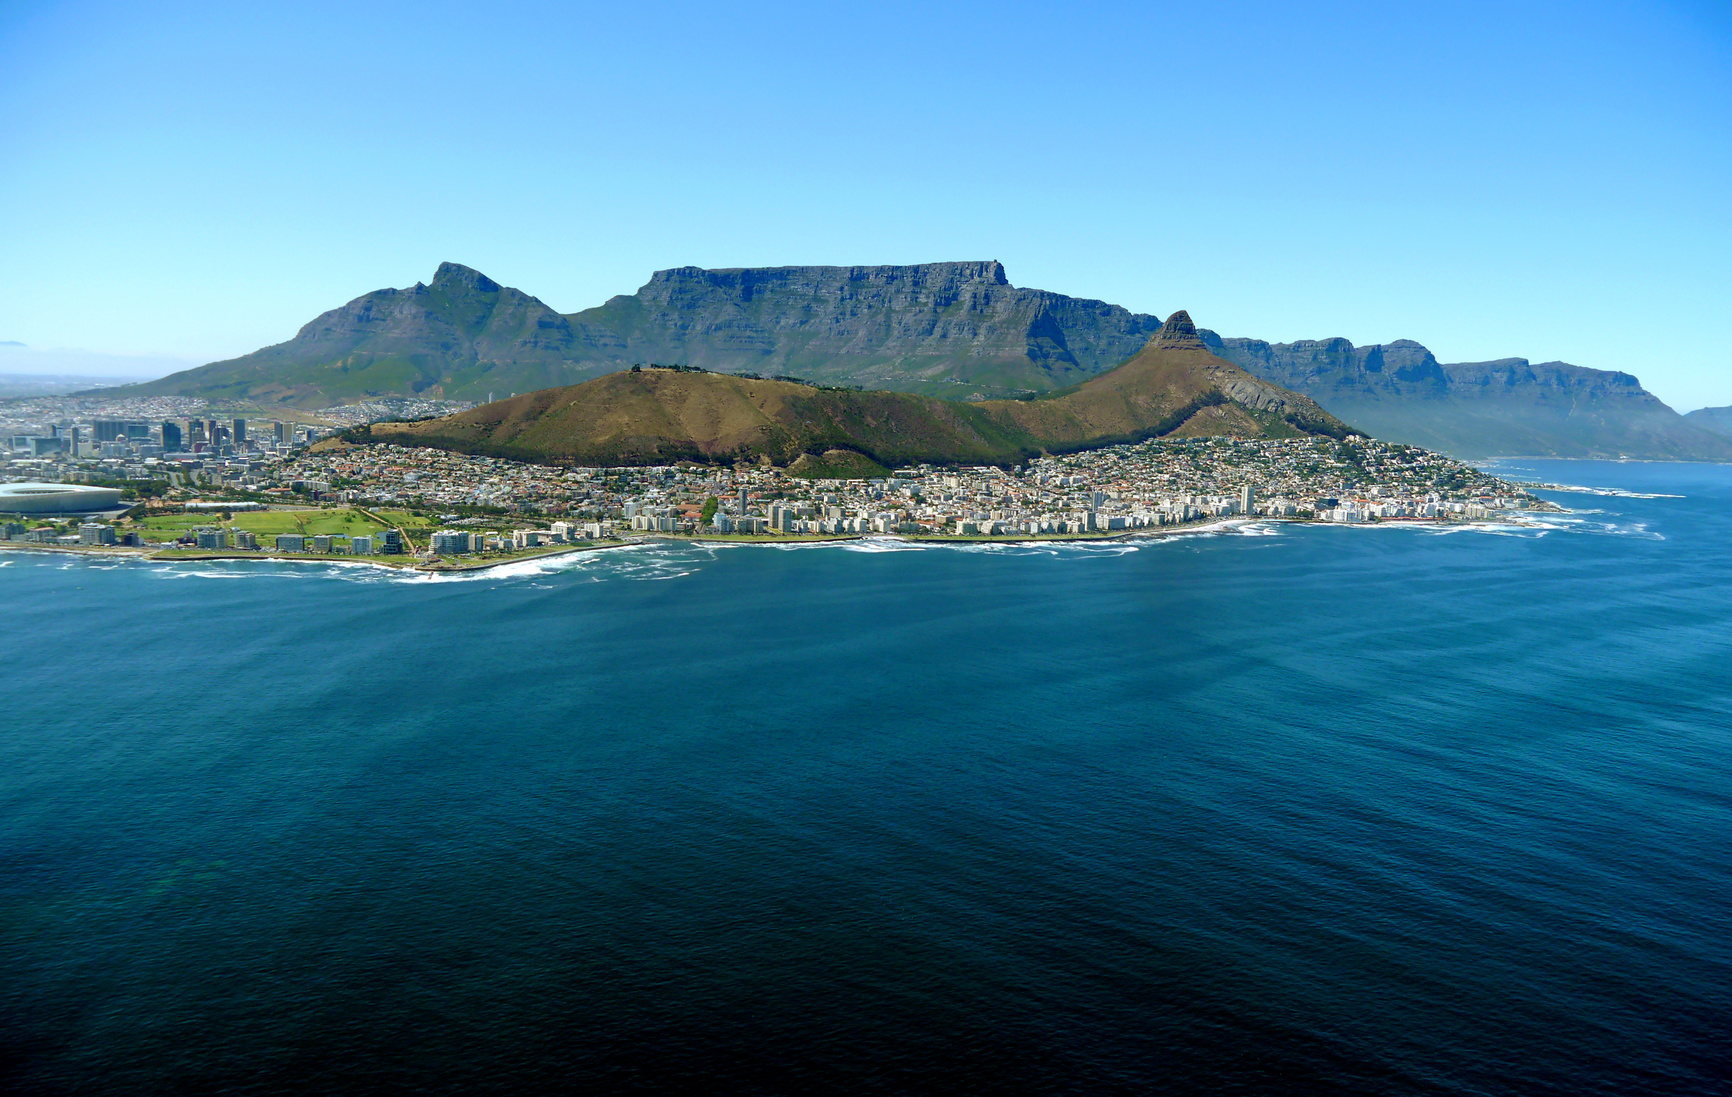 destination-weddings-table-mountain-cape-town-south-africa